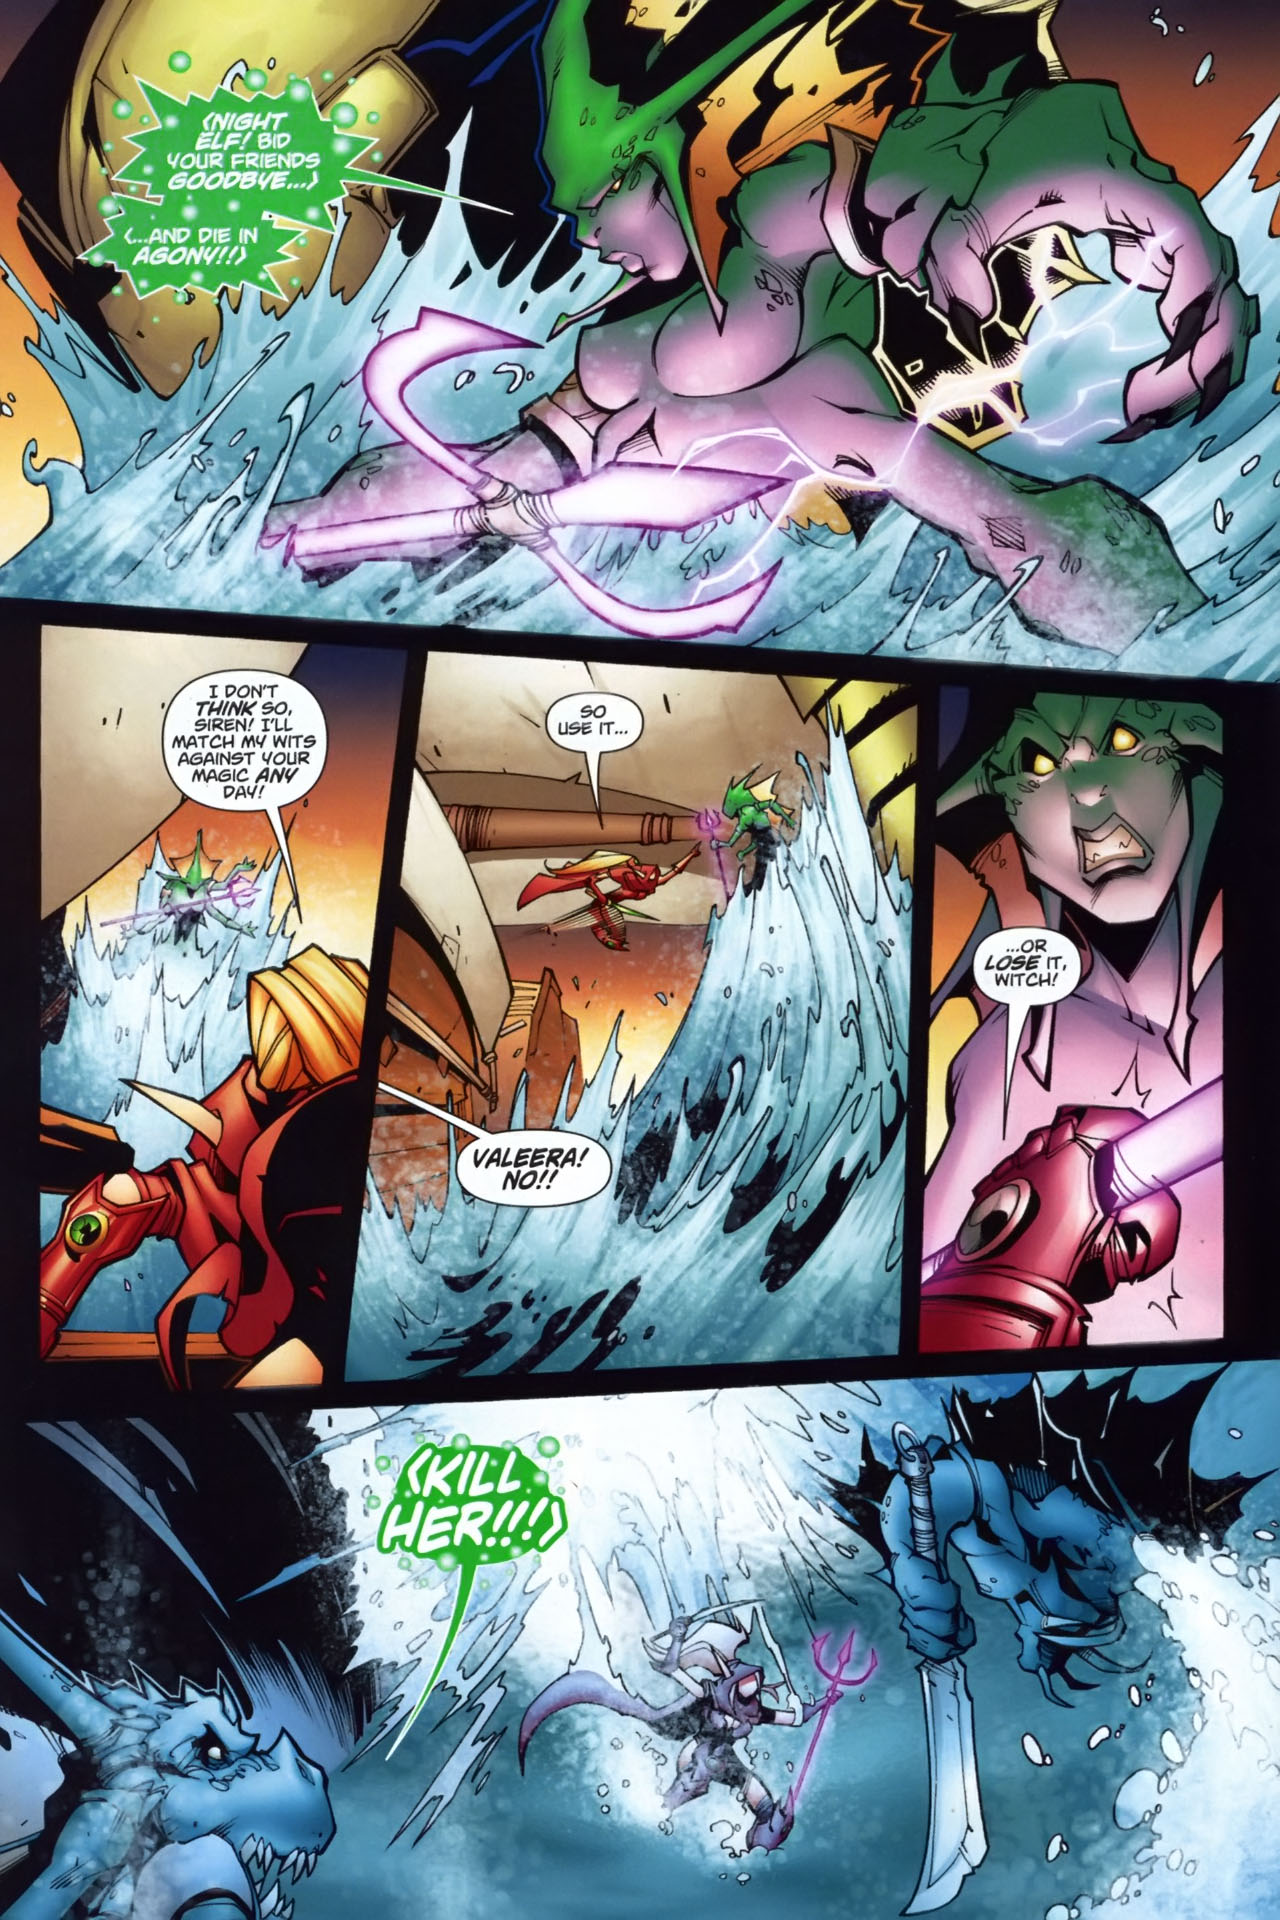 Read online World of Warcraft comic -  Issue #7 - 11